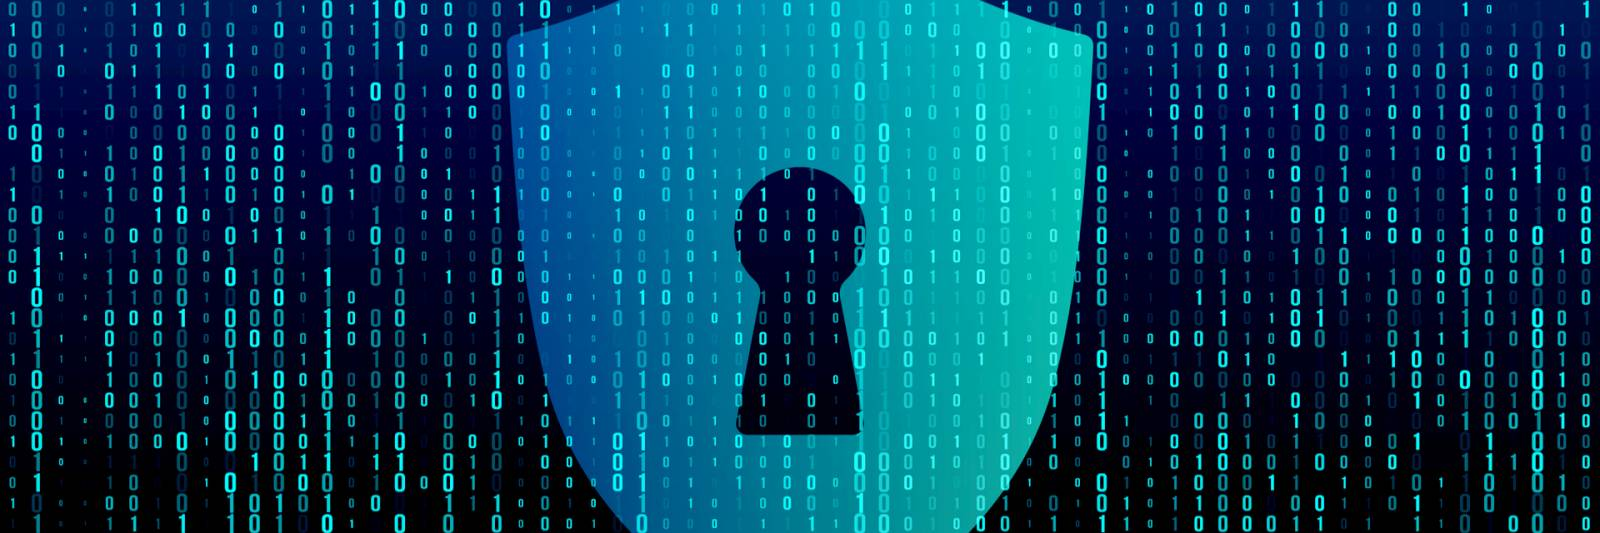 new south wales wants to become world leader in cyber